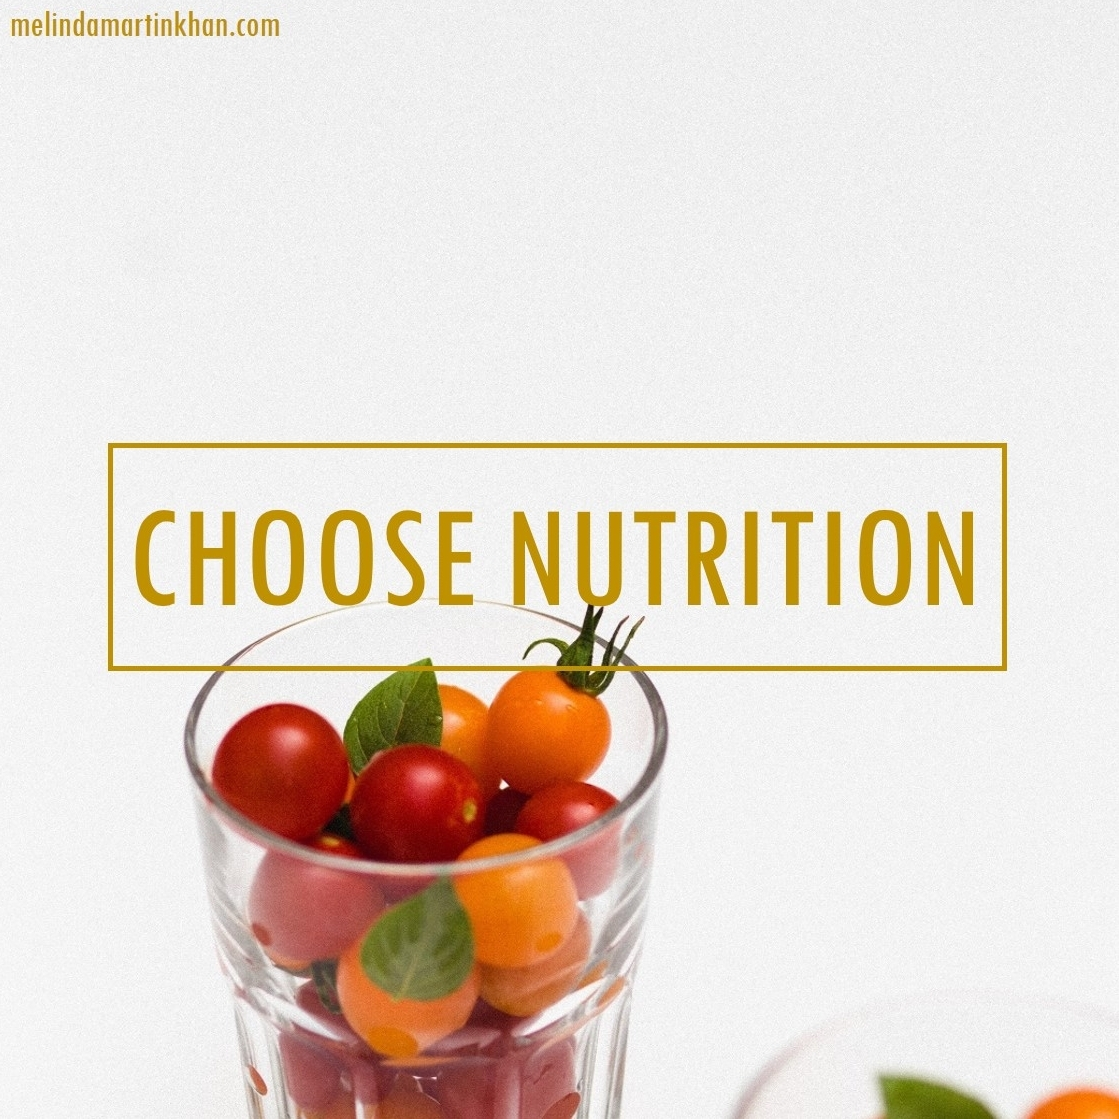 CHOOSE NUTRITION_2.jpg